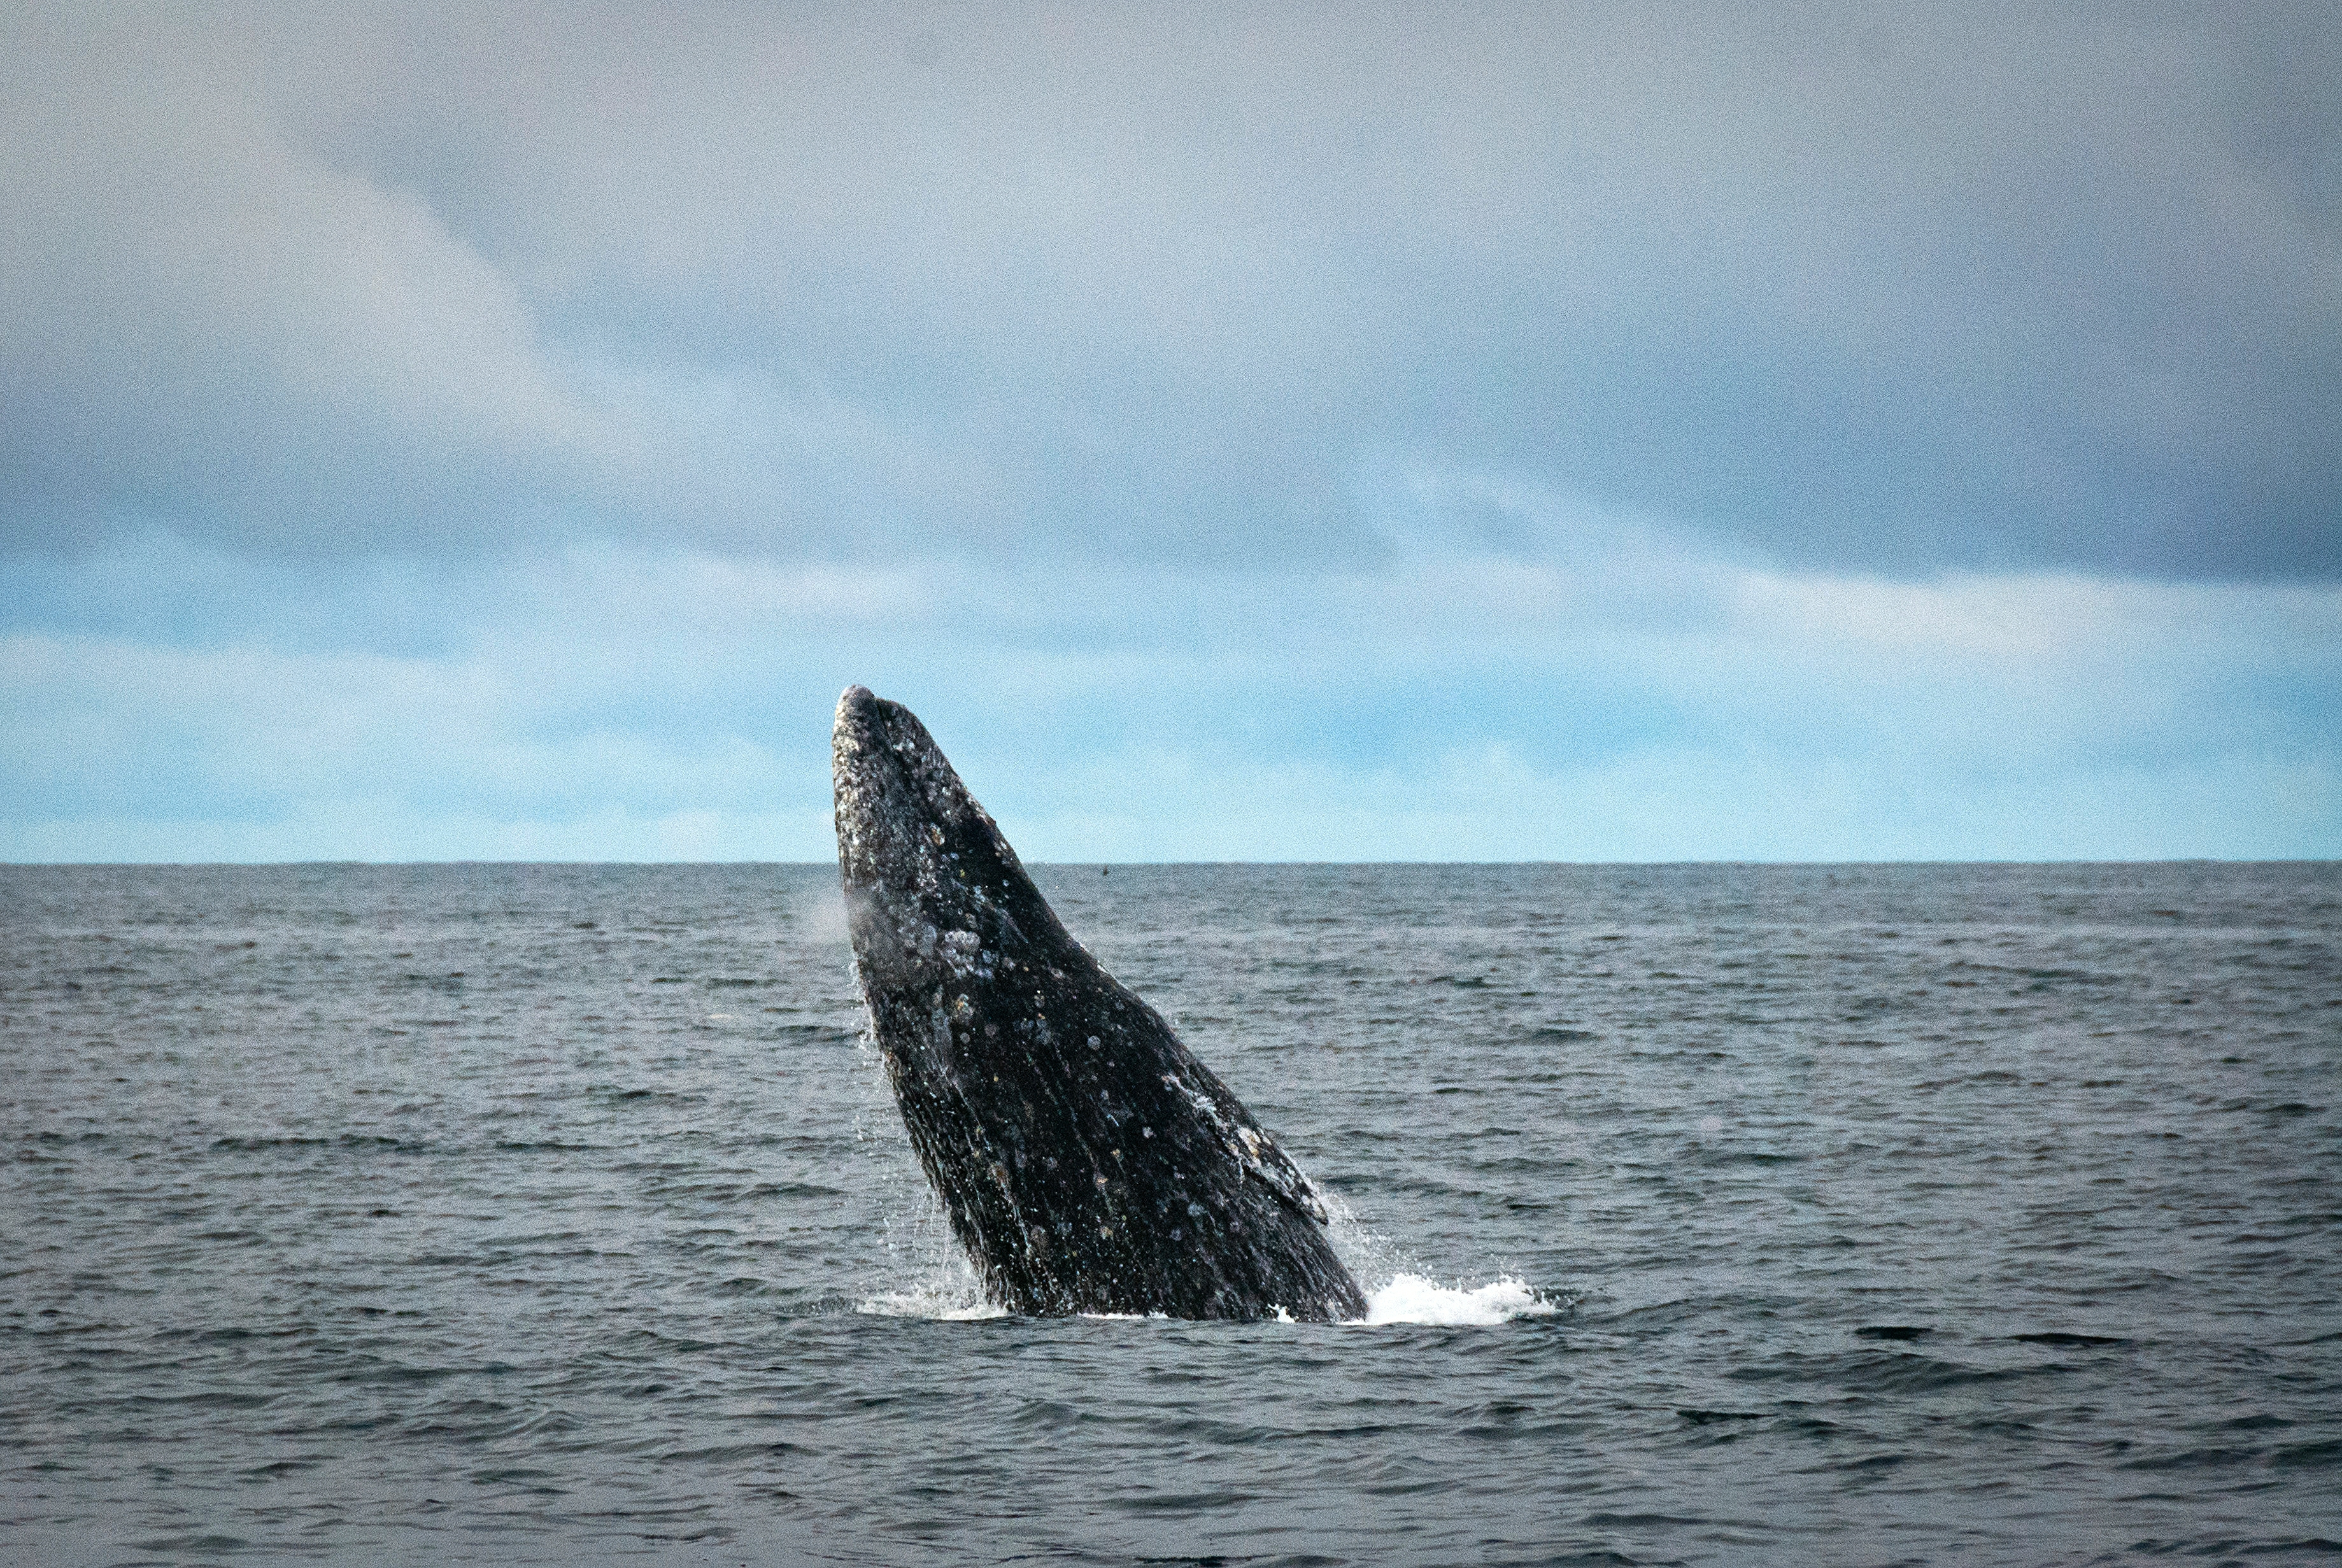 """Gray Whale Breaching"" by Eric Neitzel (Flickr), San Diego"